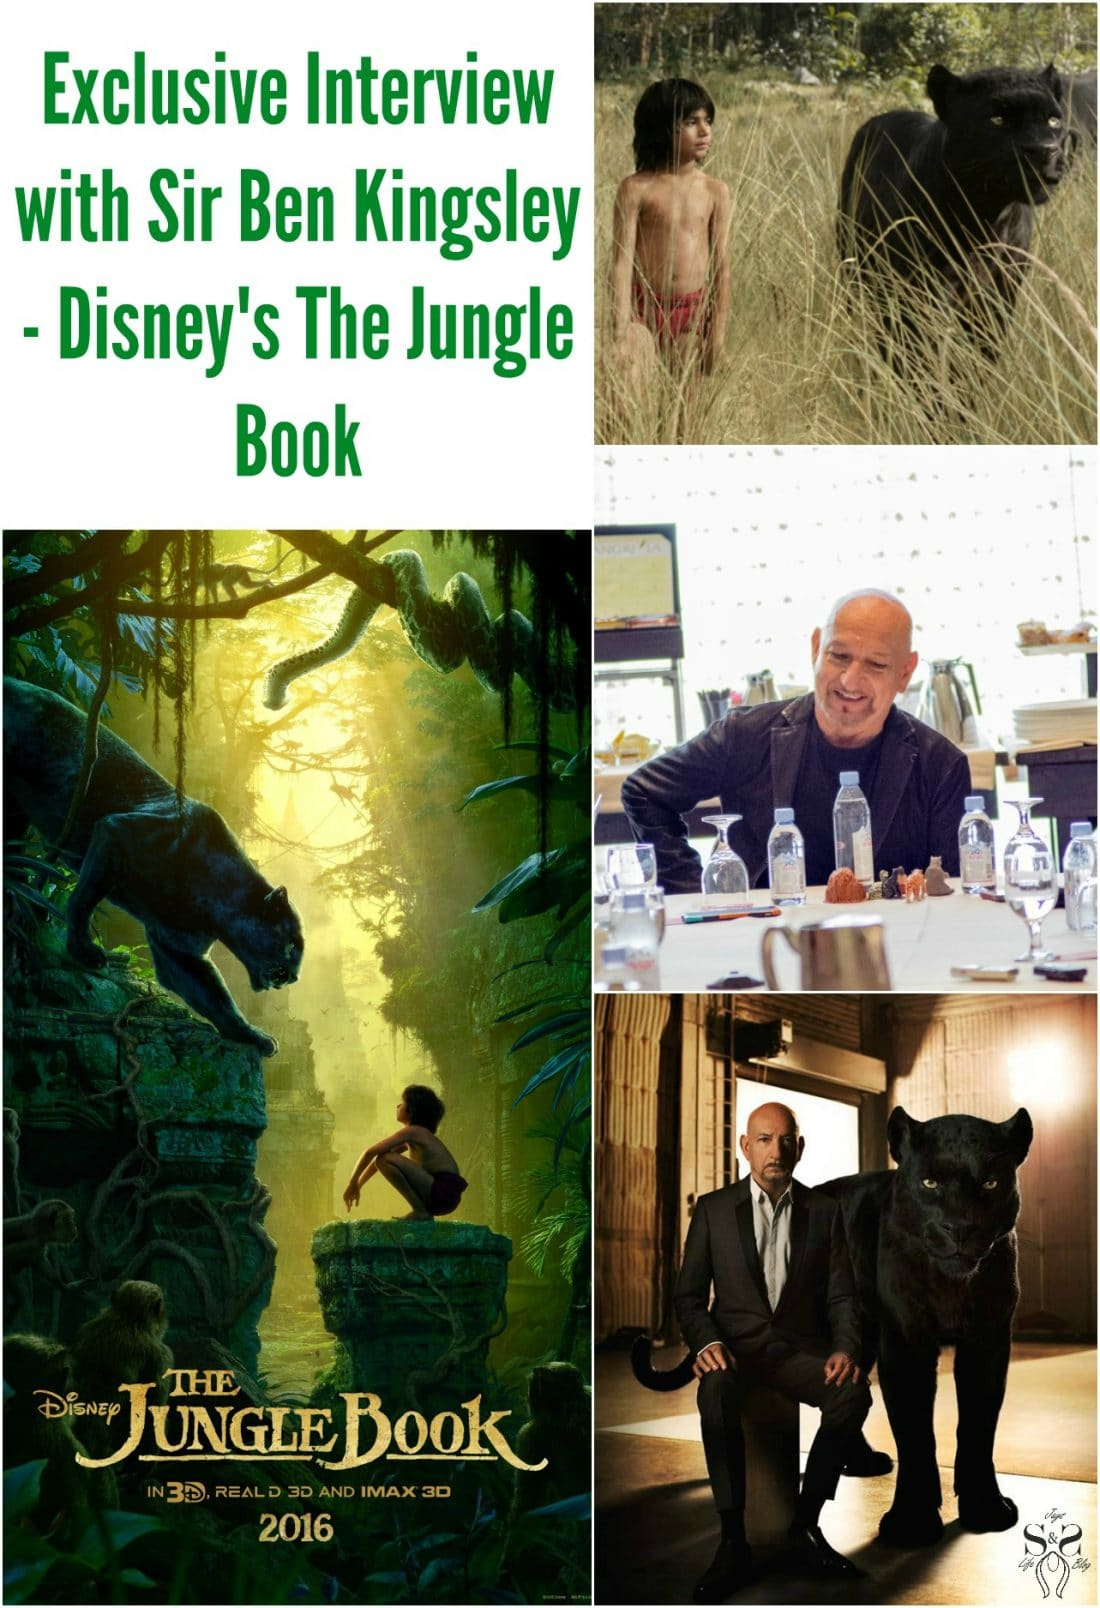 Read my exclusive interview with Sir Ben Kingsley, where we talk about his role as Bagheera in Disney's The Jungle Book. Now available on DVD, Blu-ray and Digital today.